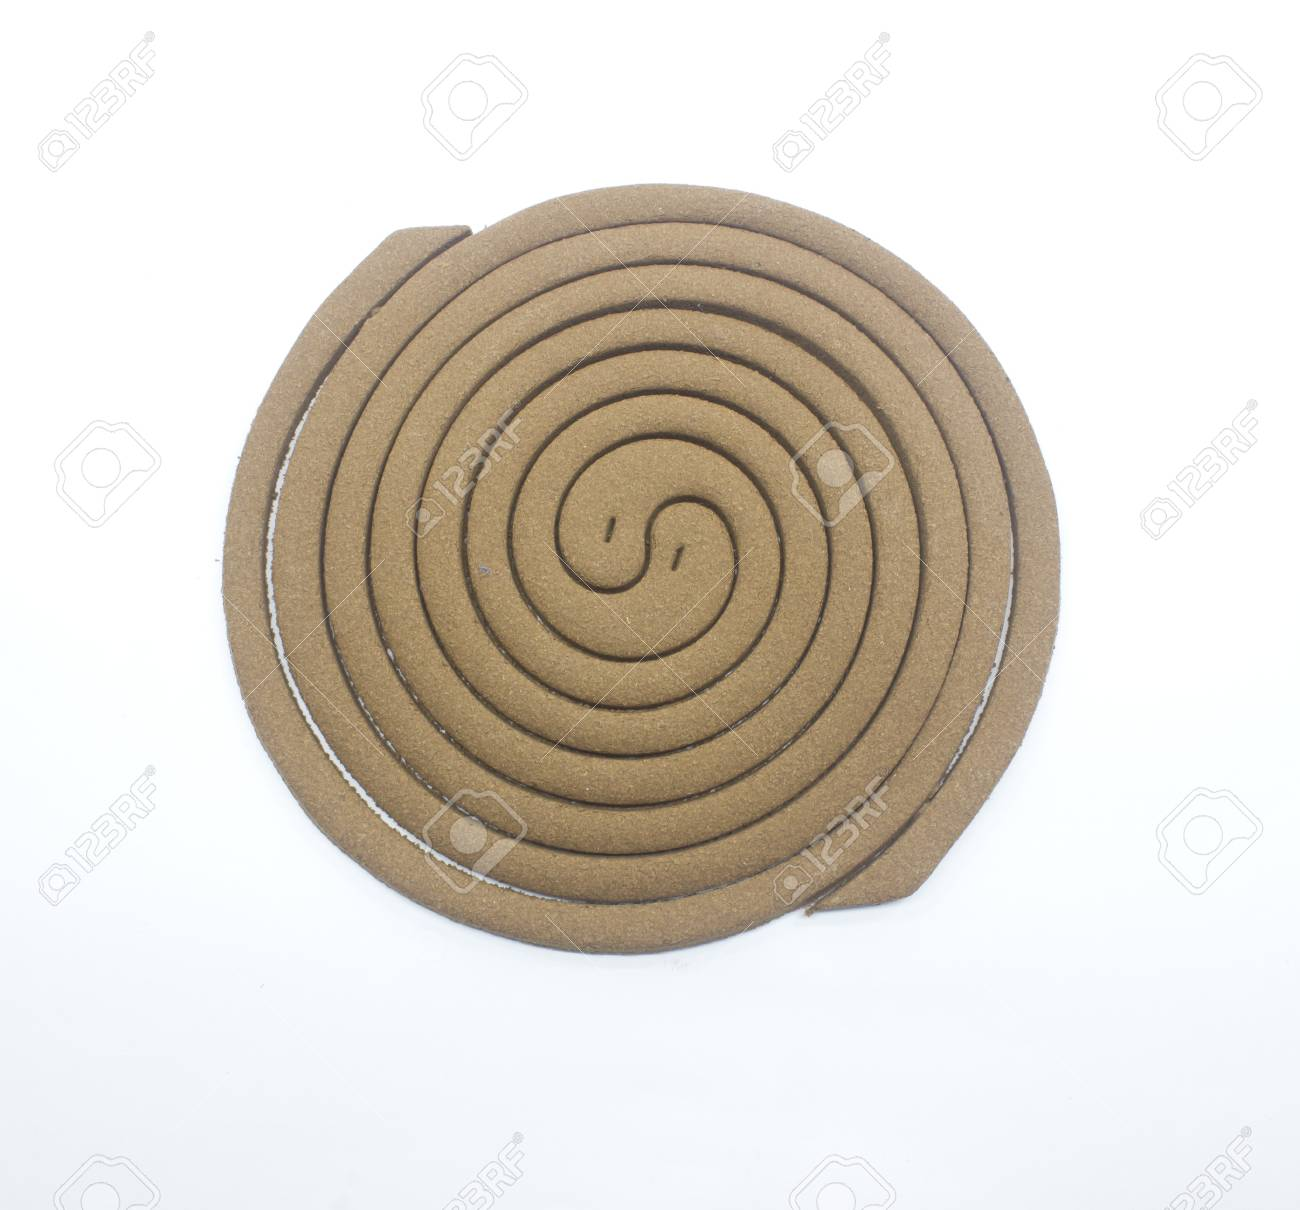 mosquito repellent incense coil isolated on white background Stock Photo - 21645423